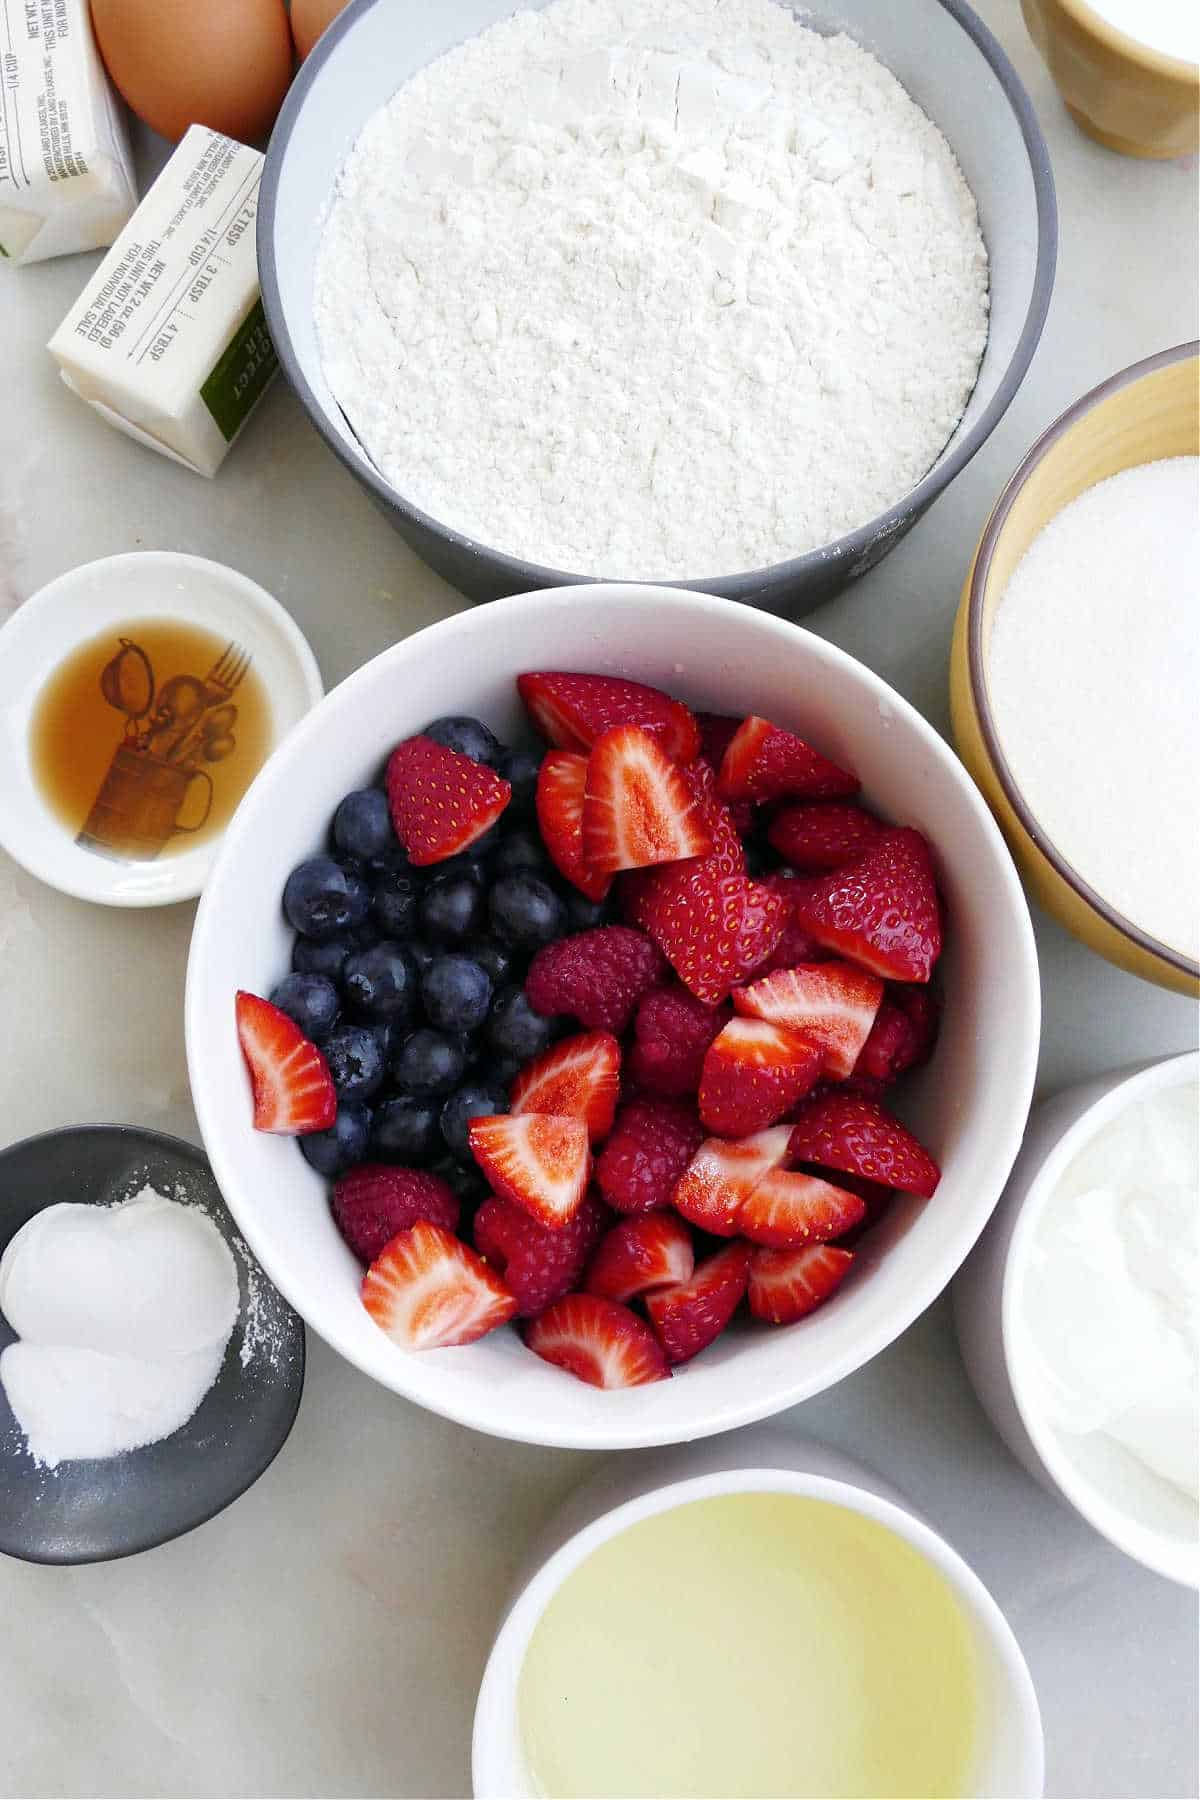 ingredients for berry cupcakes spread out next to each other on a counter